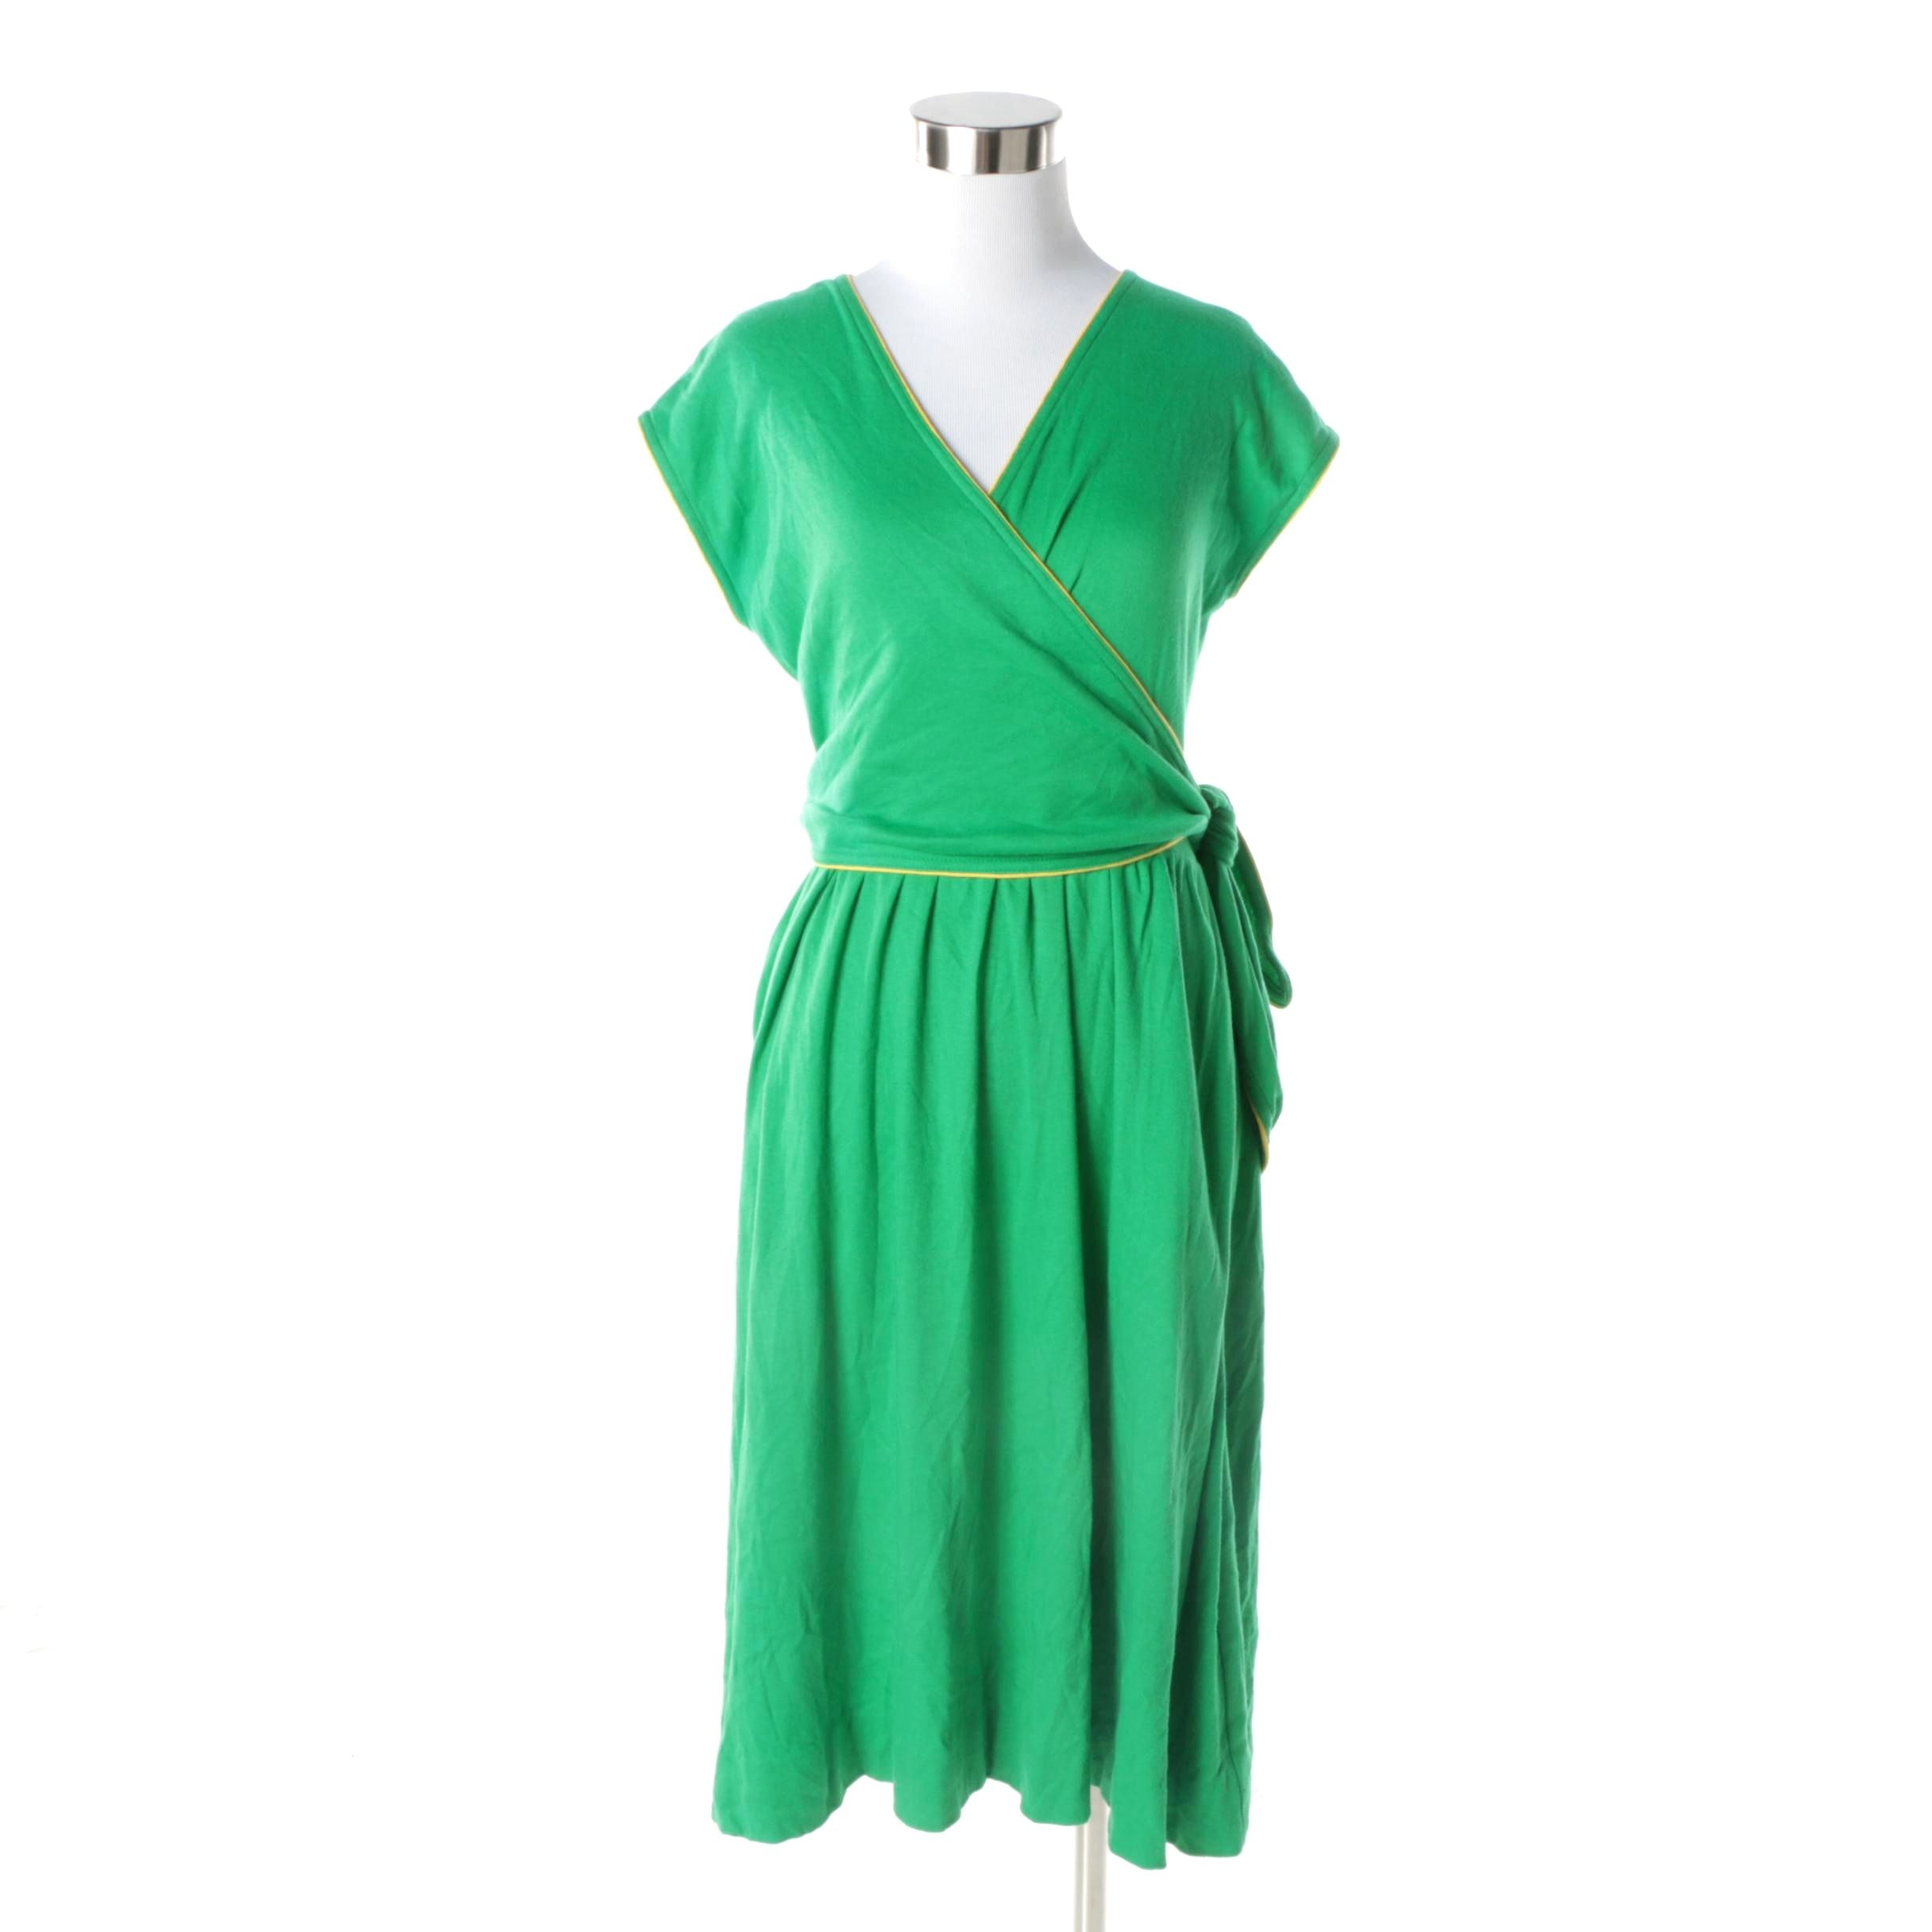 Circa 1970s Diane Von Furstenberg Kelly Green Wrap Dress with Yellow Piping